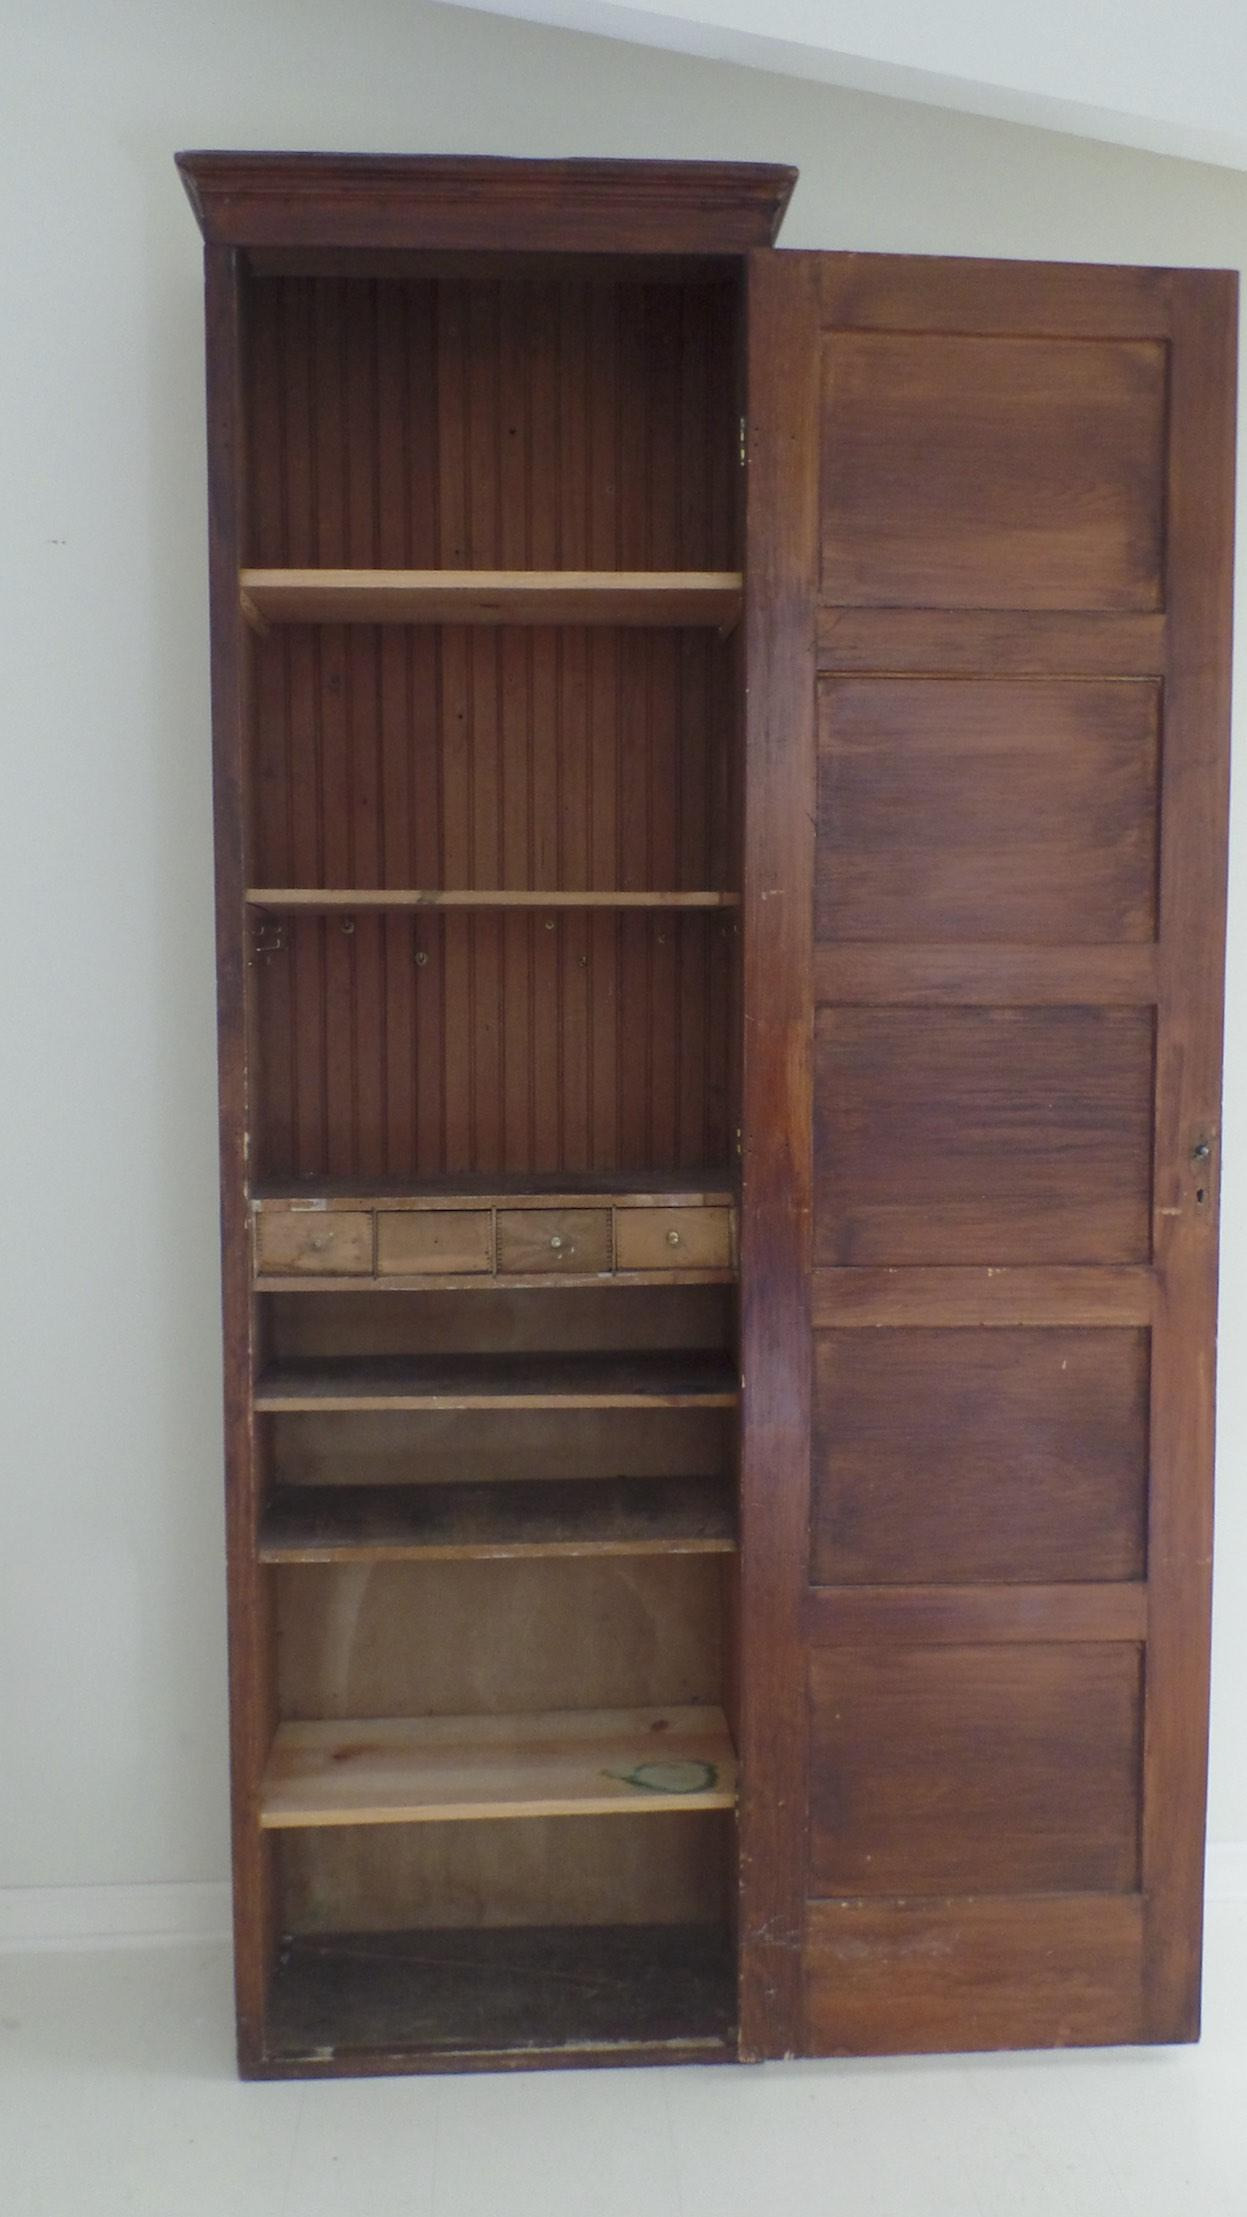 Storage Cabinet with Doors and Drawers Unique Elegant Storage Cabinet with Door and Shelf 38 Decofurnish